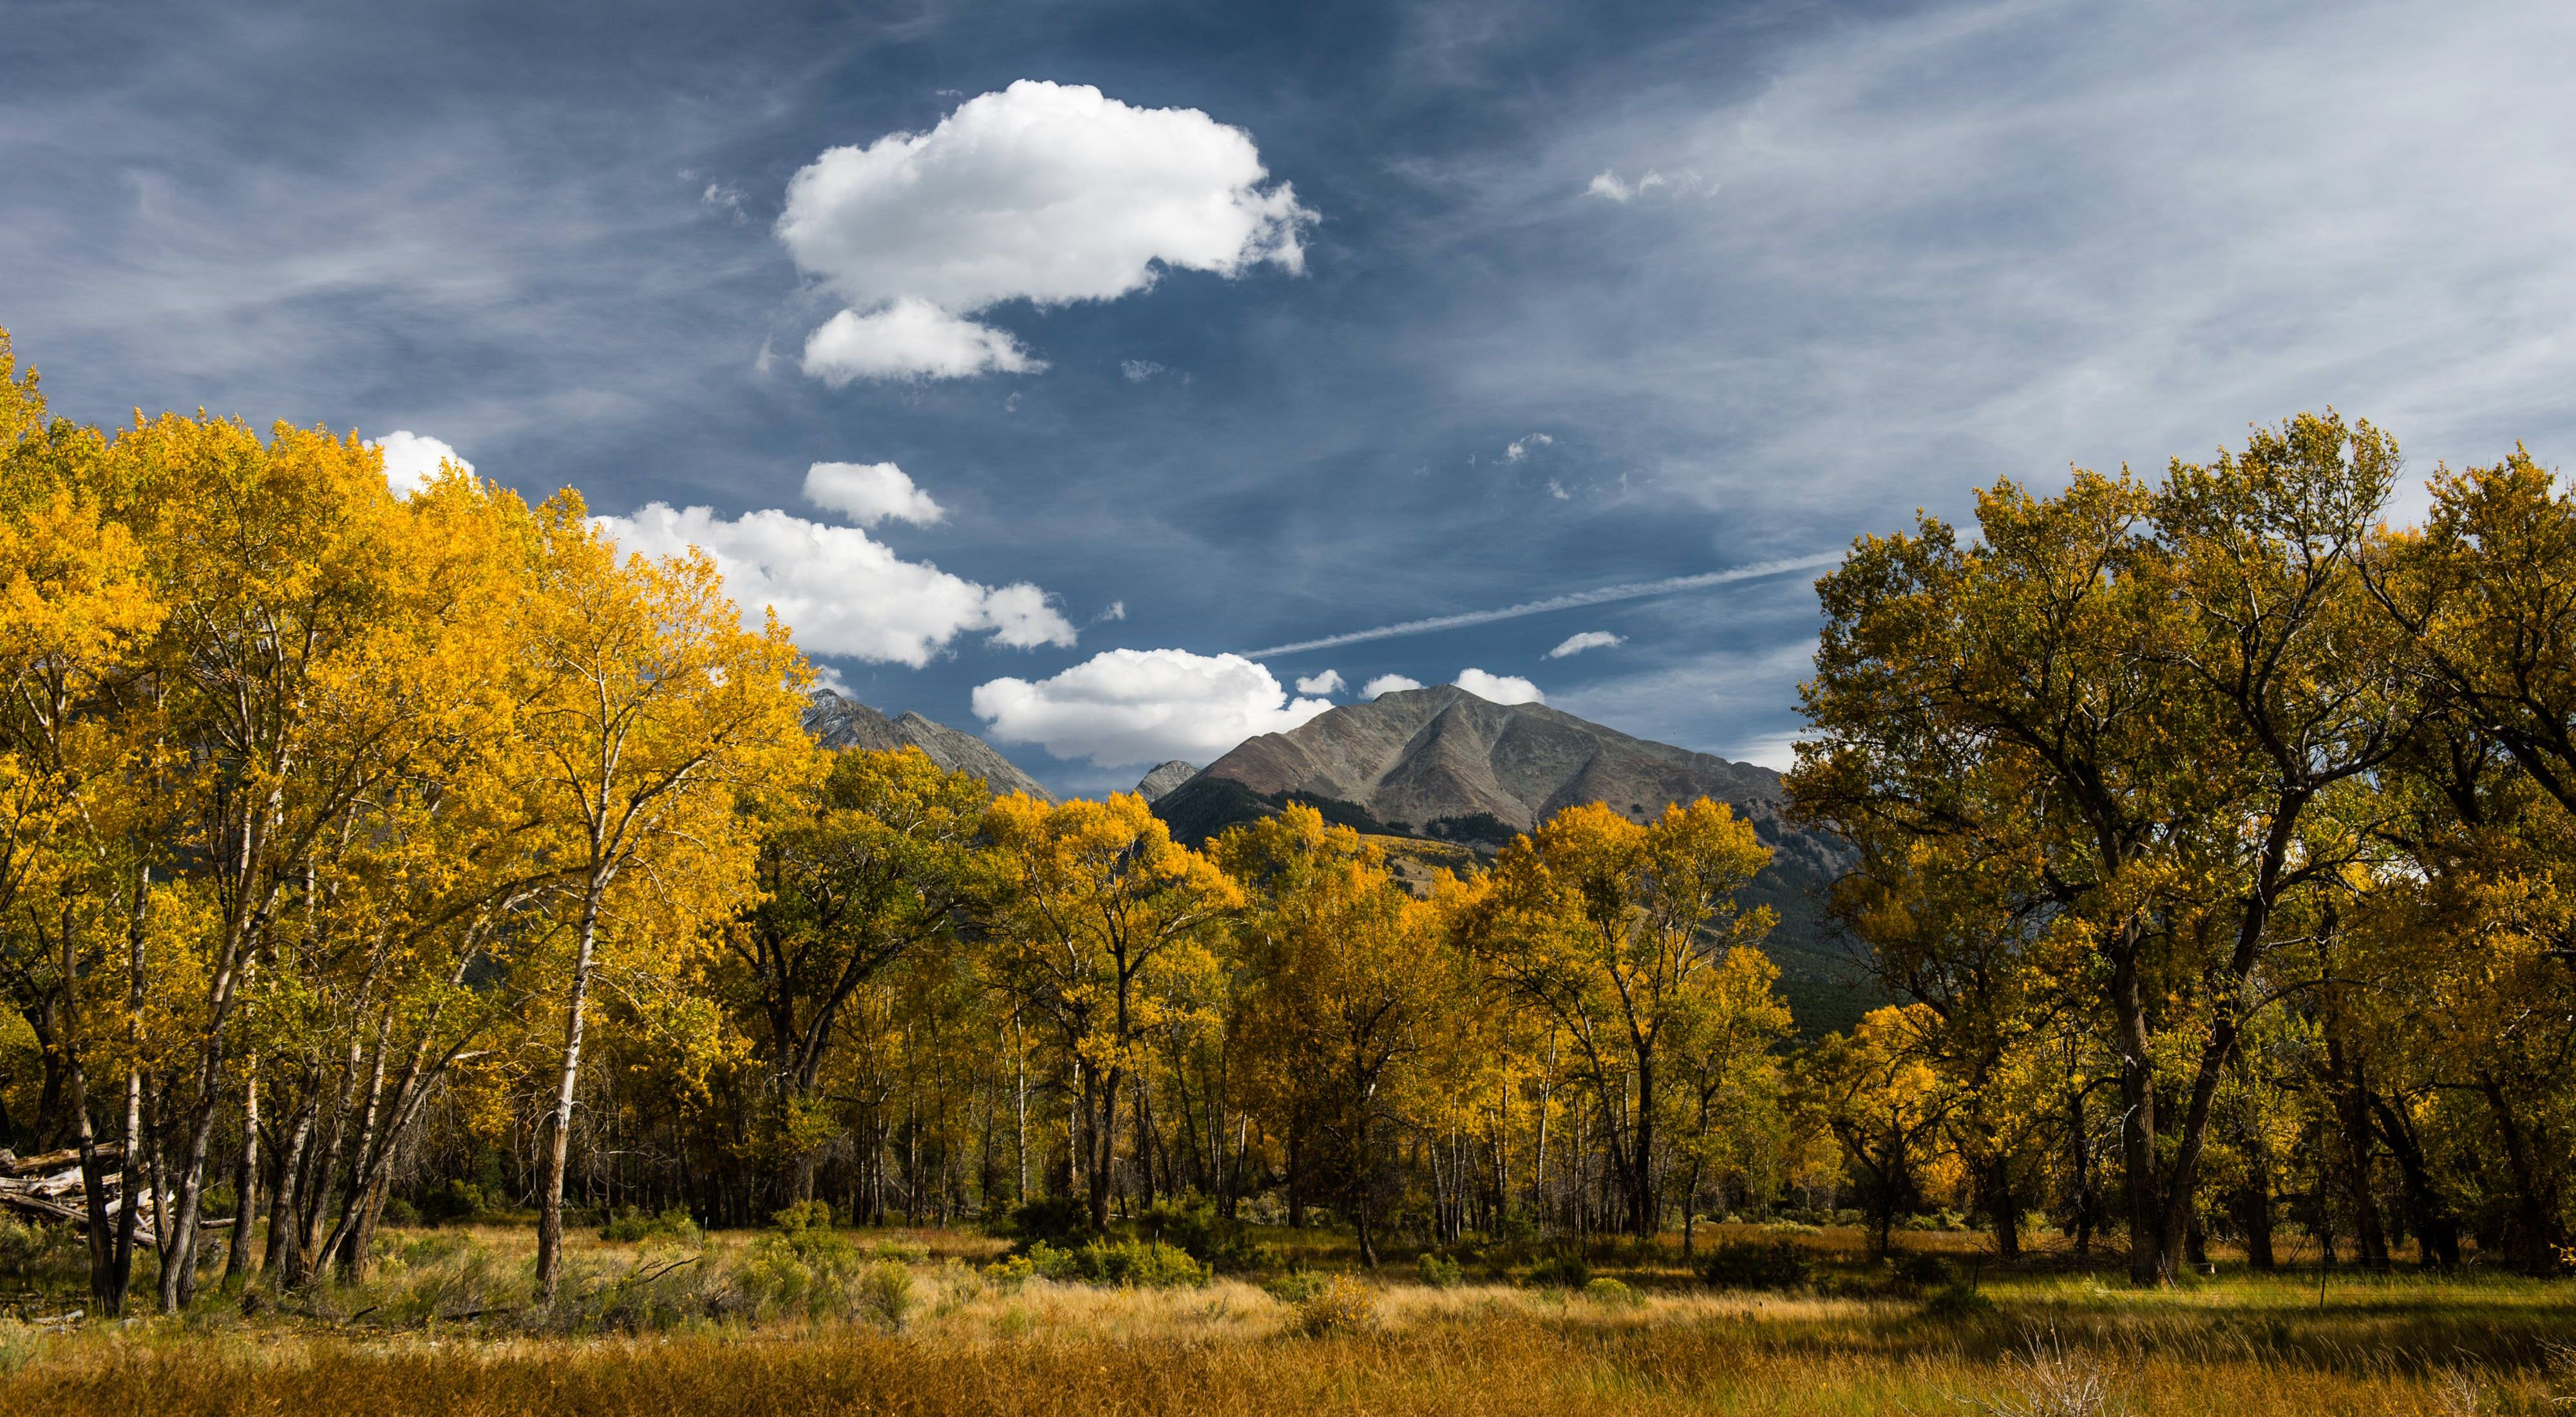 A view of fall colors and mountains on The Nature Conservancy's Zapata Ranch, Colorado USA.